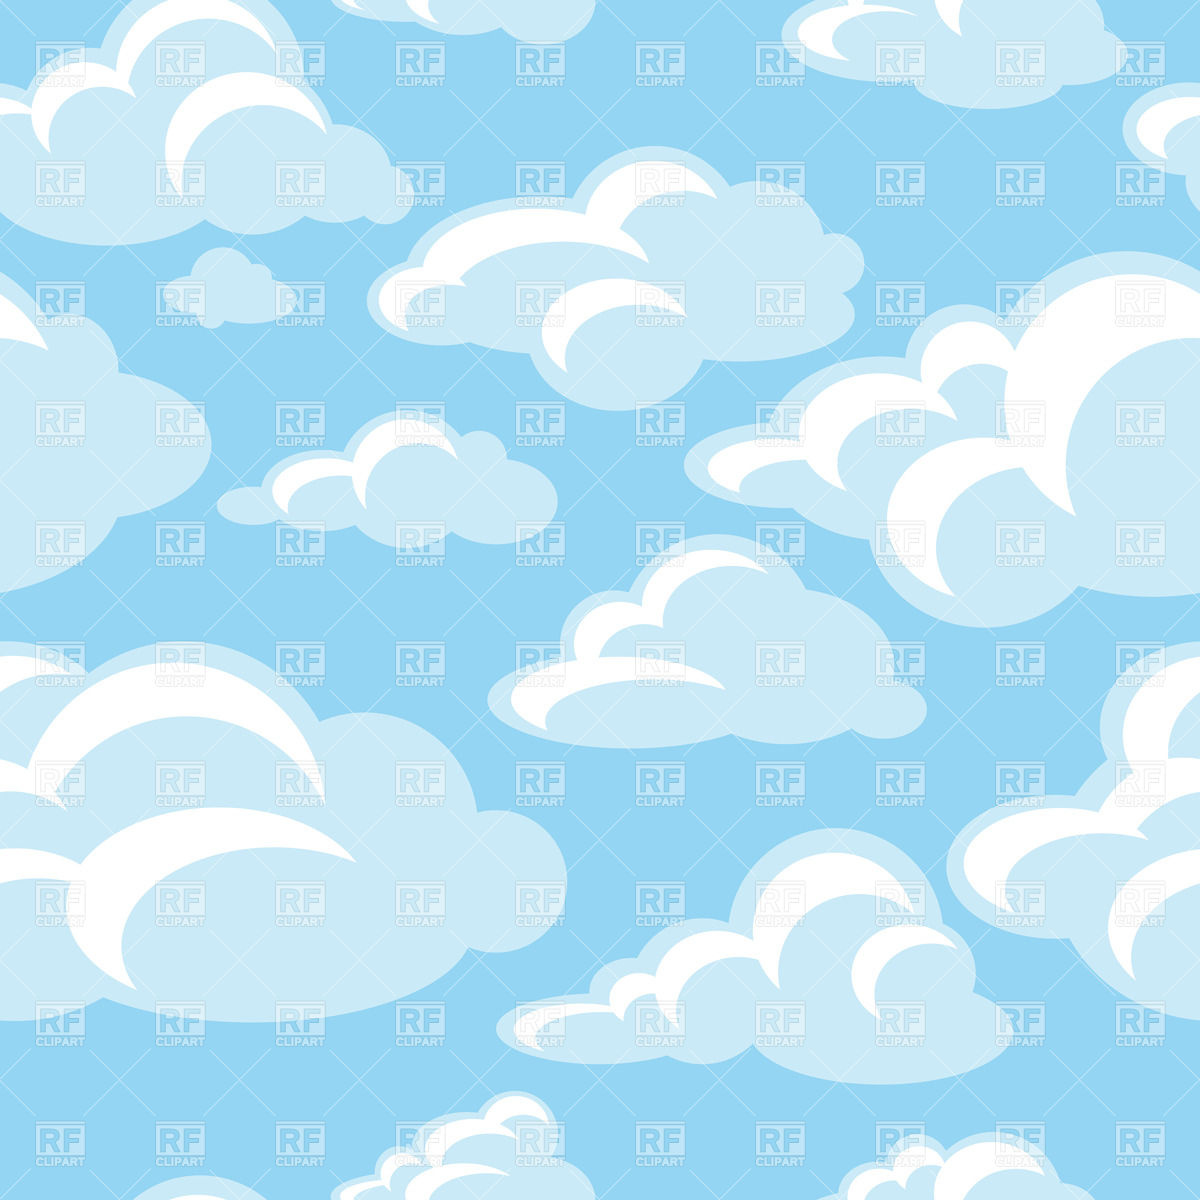 Bg clouds clipart svg black and white library Cloud Background Clipart (101+ images in Collection) Page 1 svg black and white library